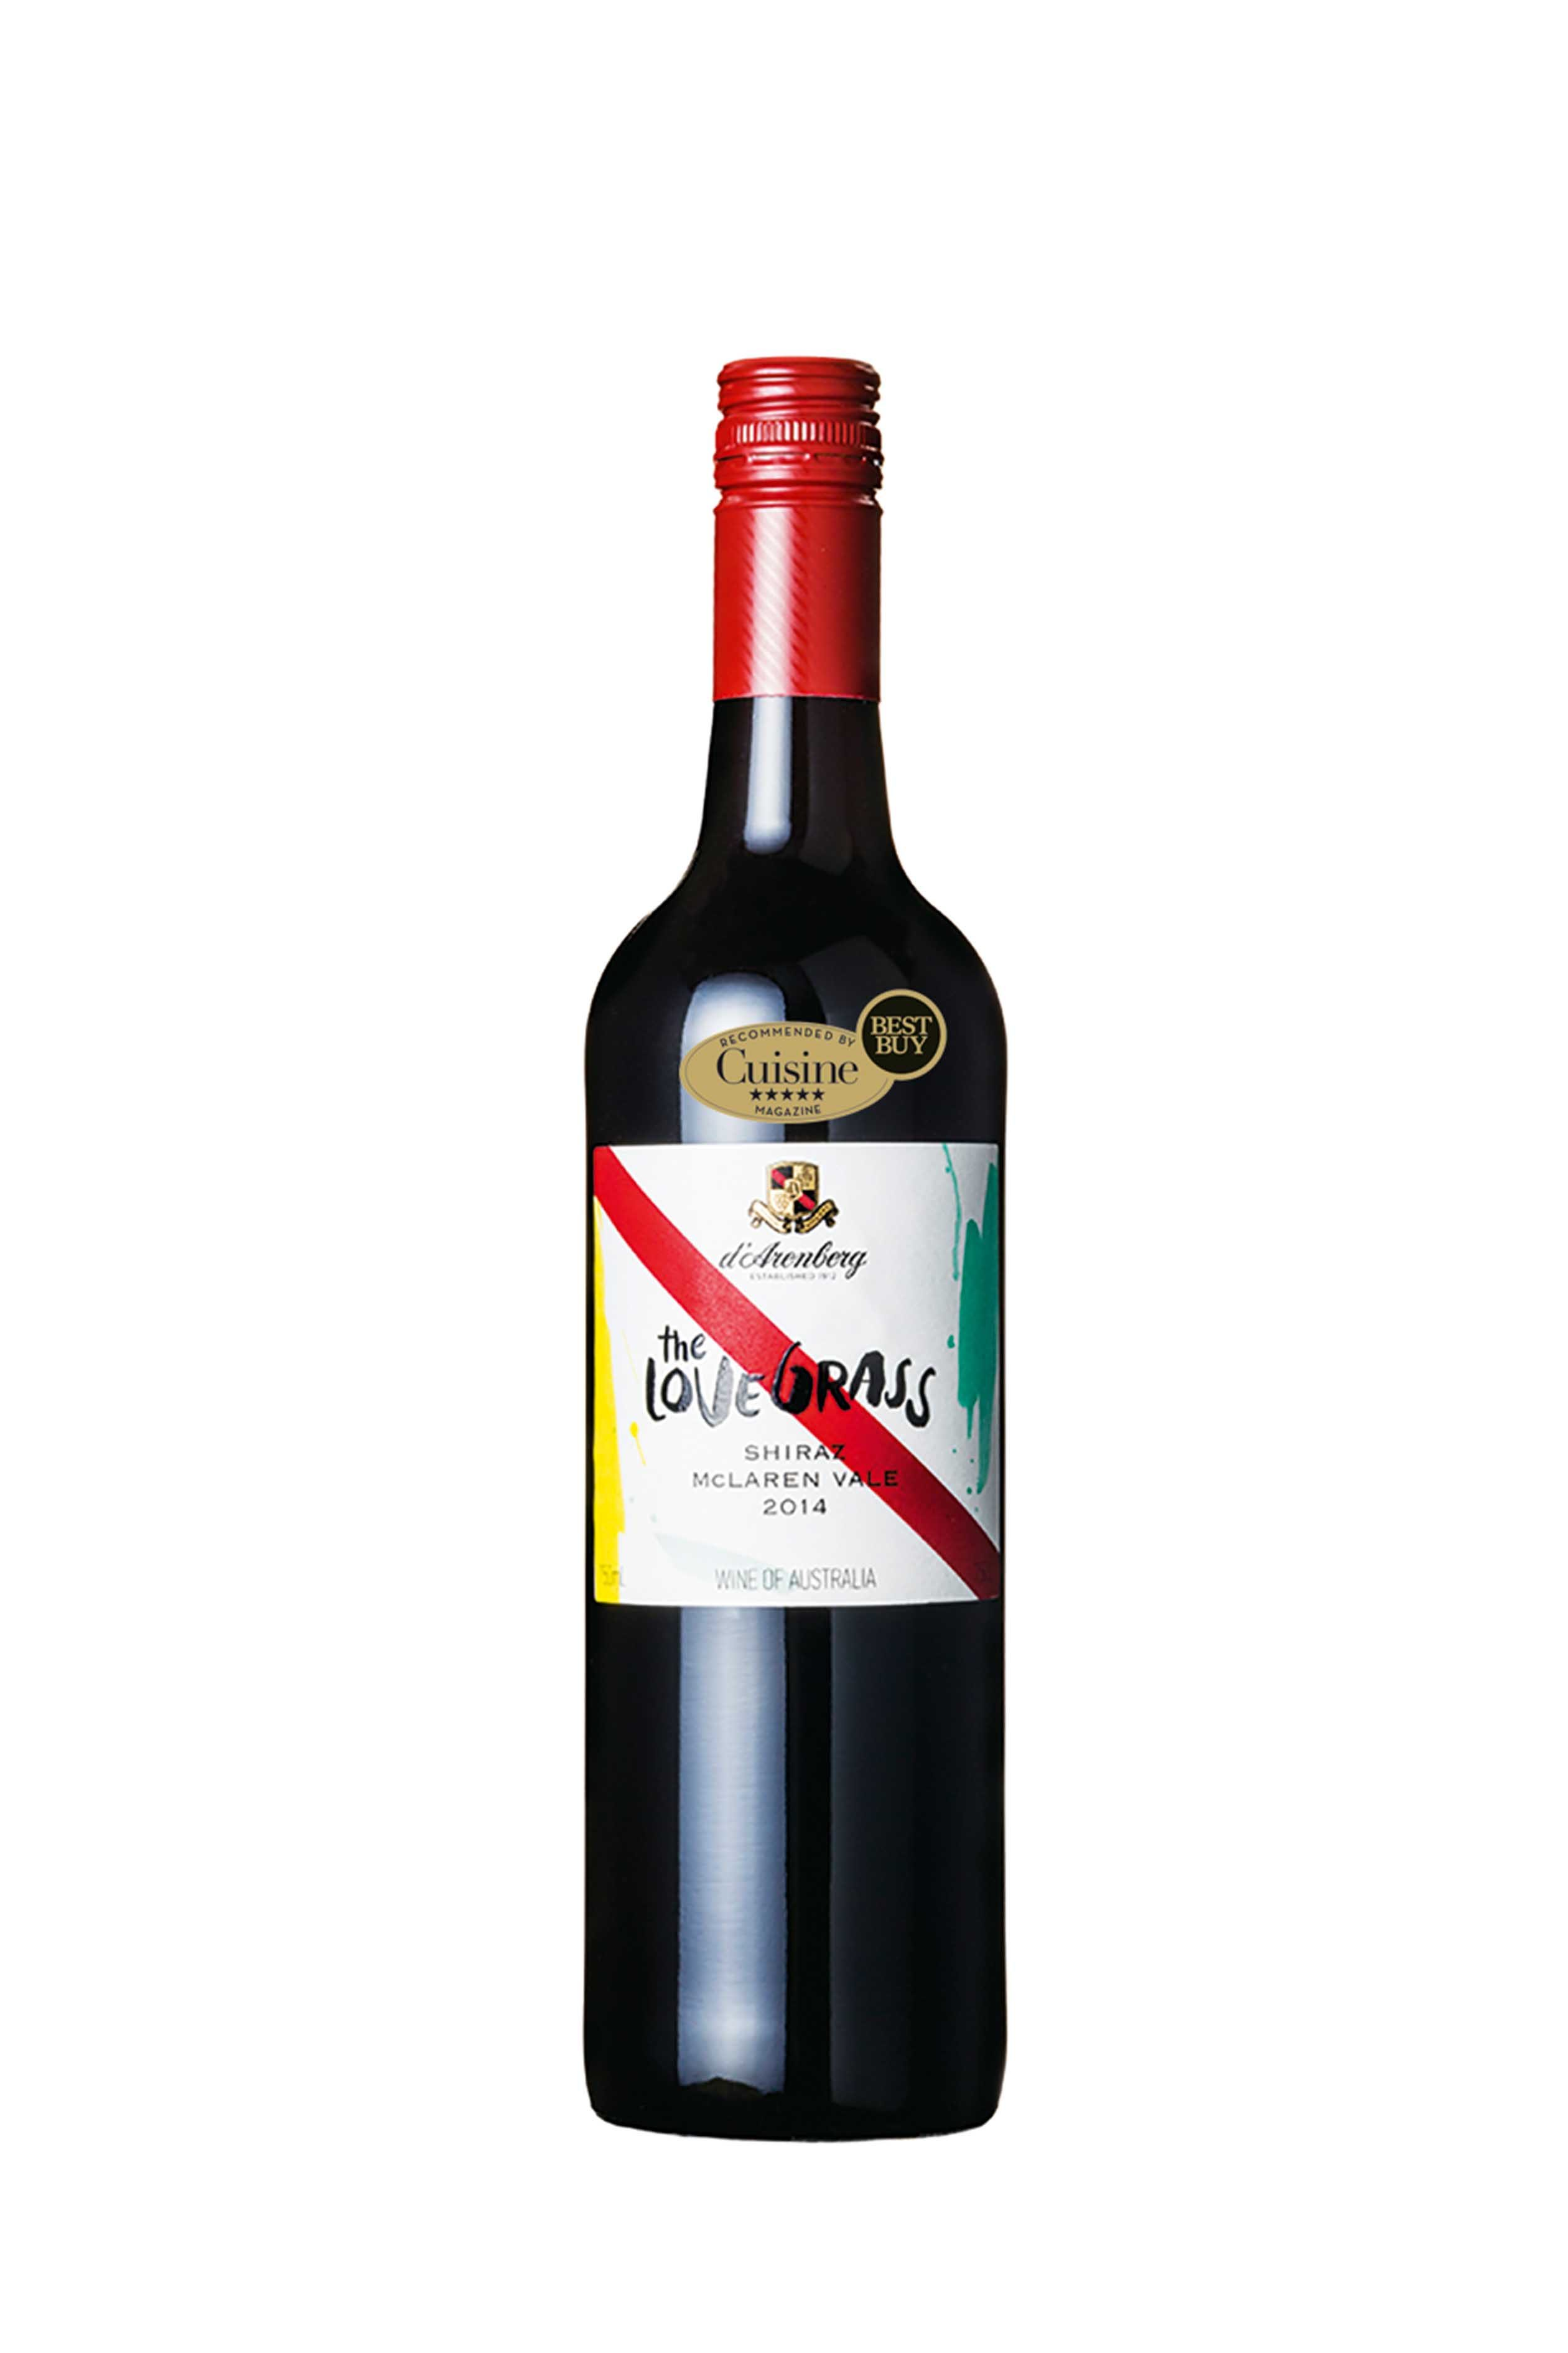 d'Arenberg The Love Grass Shiraz